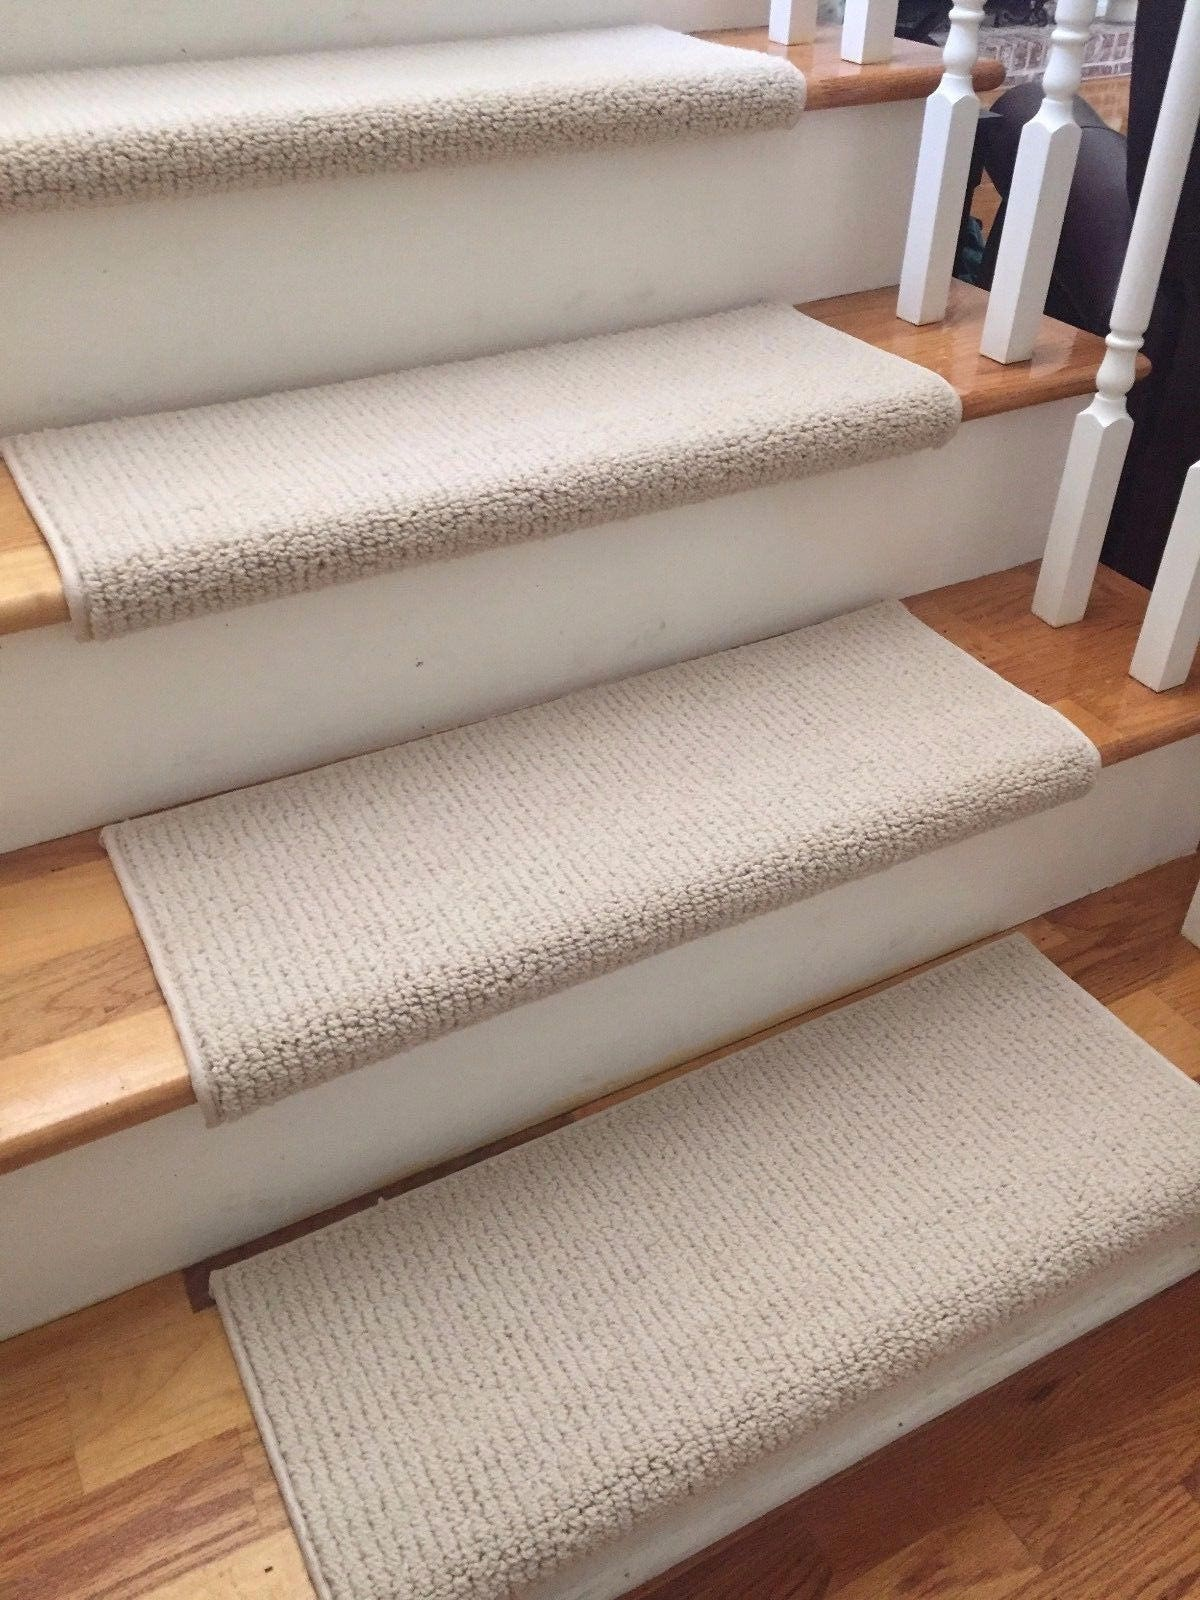 Laredo Corde Ivory New Zealand Wool! TRUE Bullnose™ Carpet Stair Tread  Runner Replacement For Style, Comfort And Safety (Sold Each)